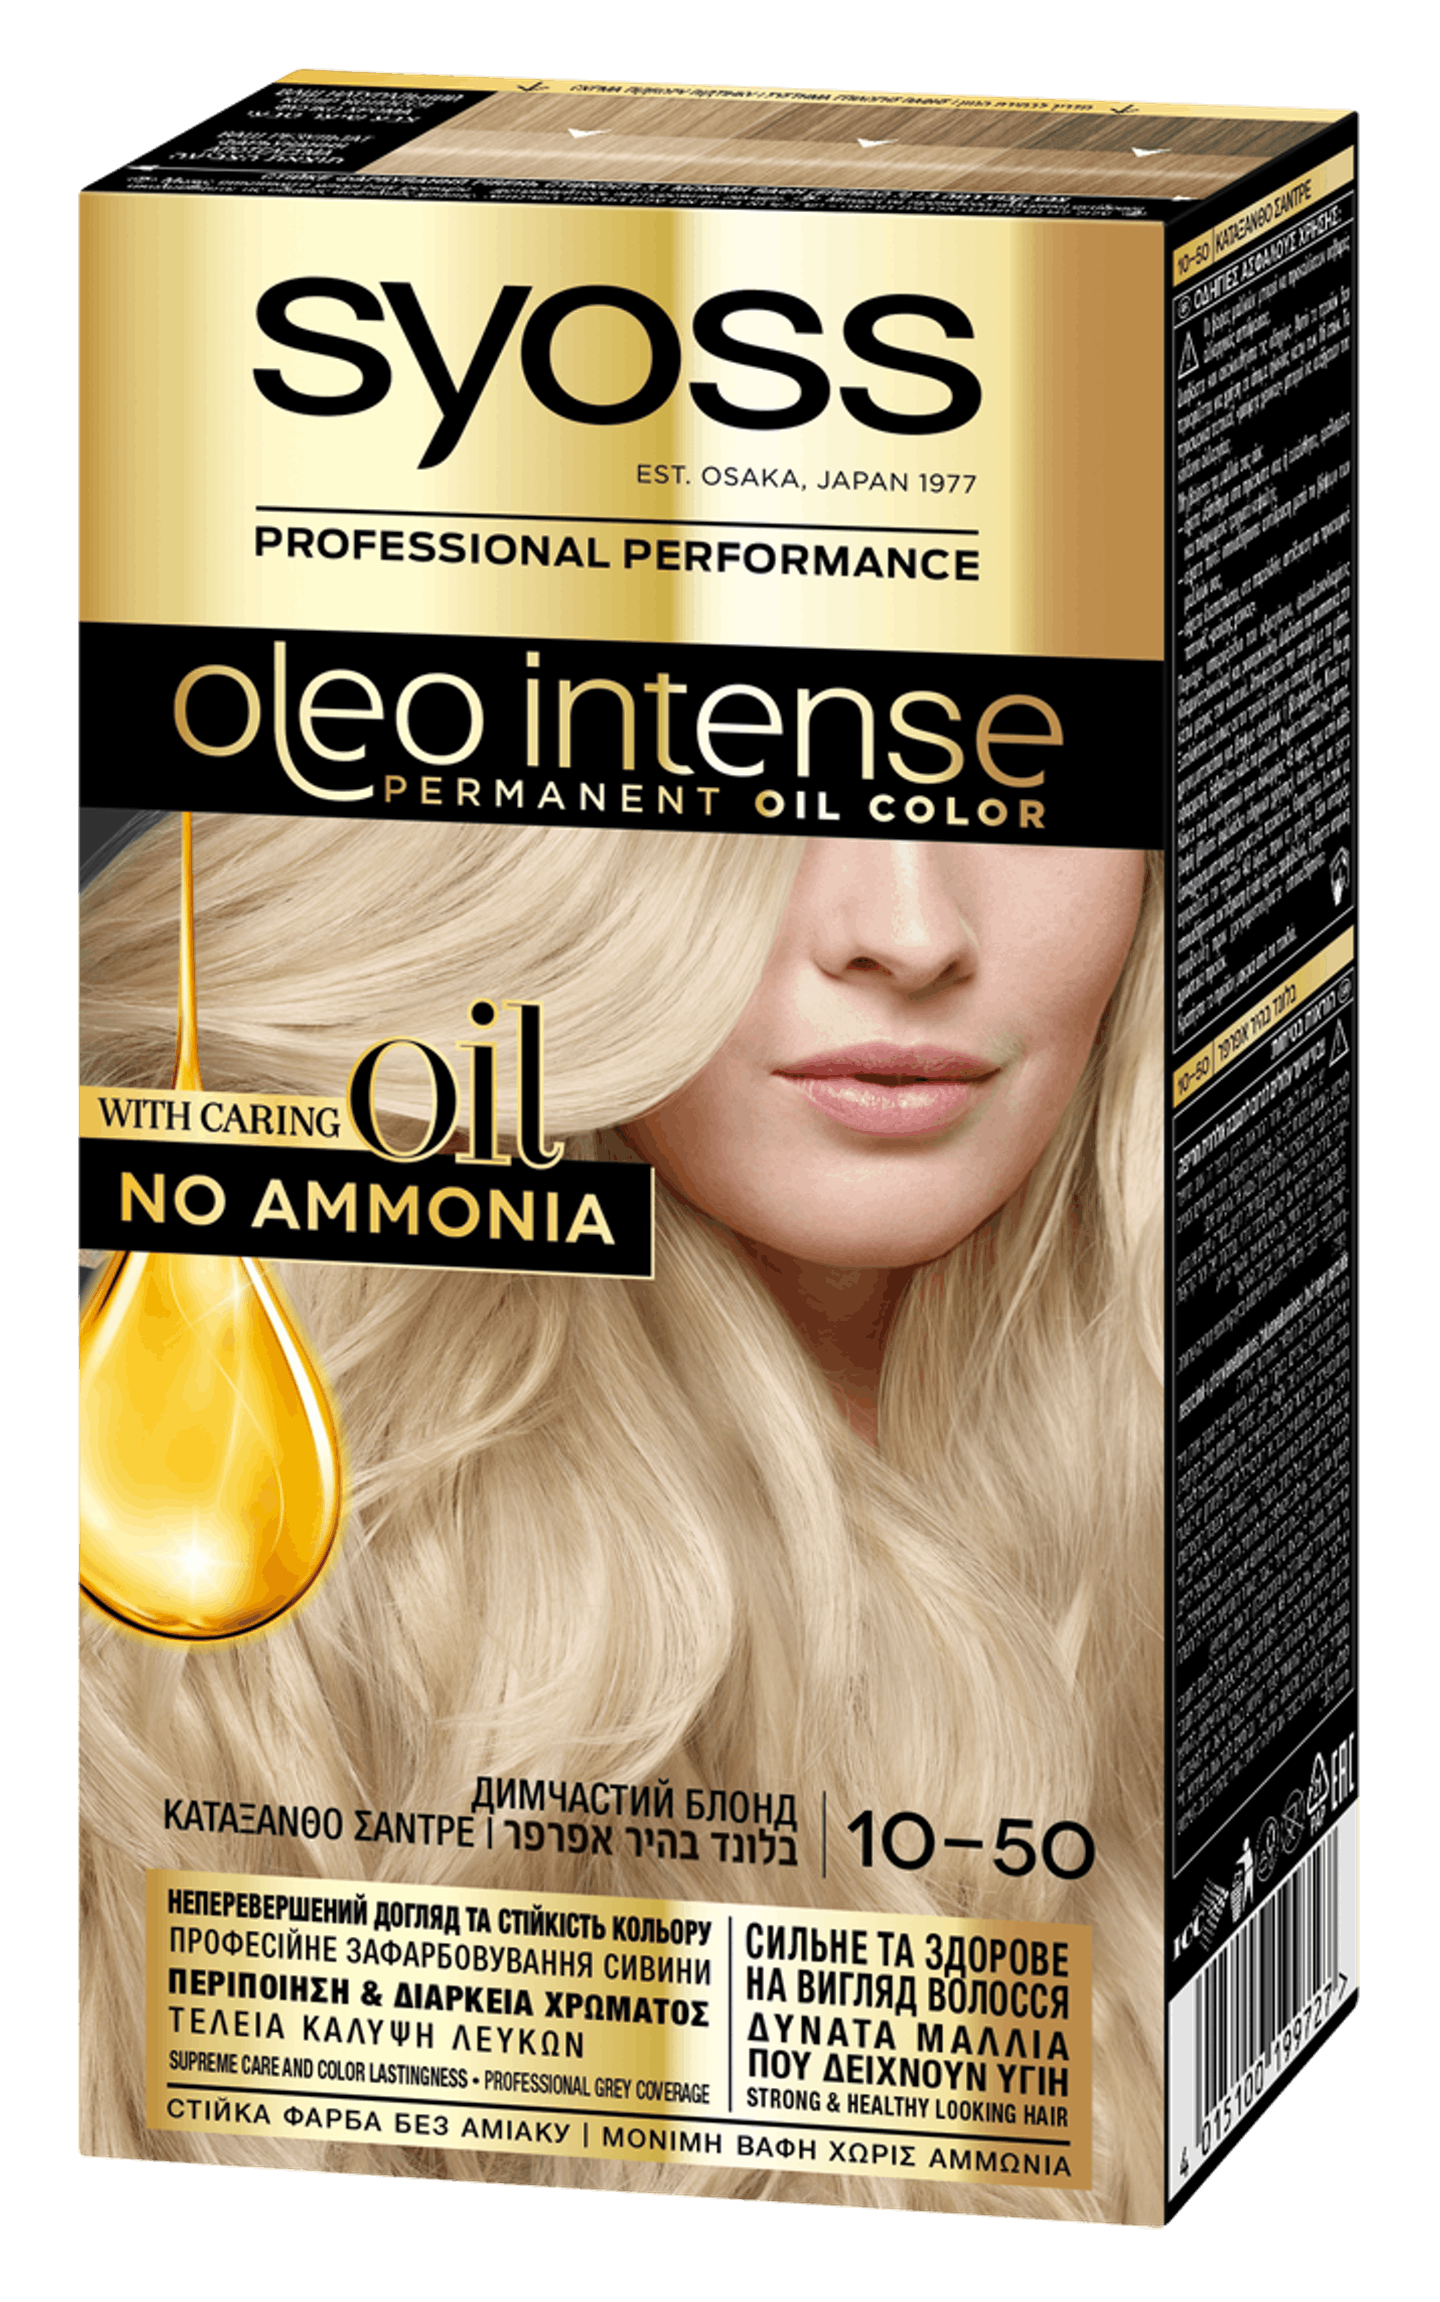 Syoss Oleo Intense Димчастий Блонд 10-50